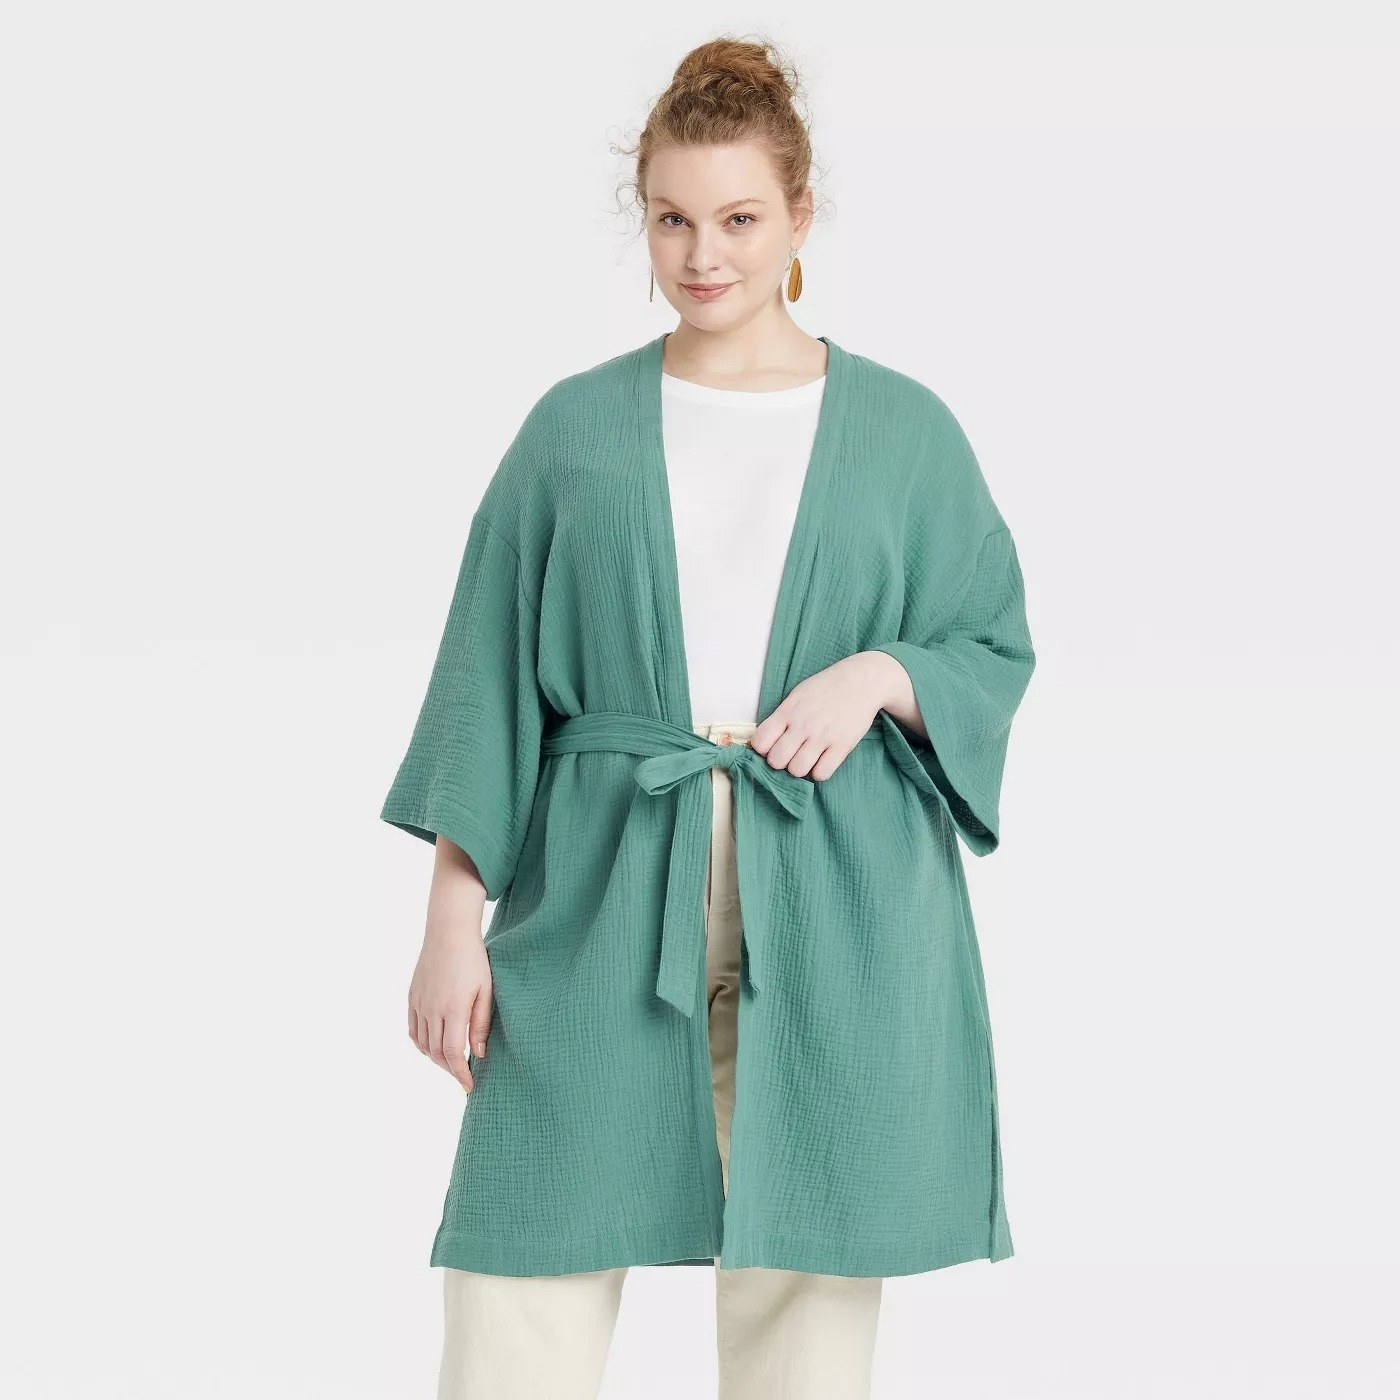 Model wearing long sleeve teal duster, stops above the thigh, tie waist